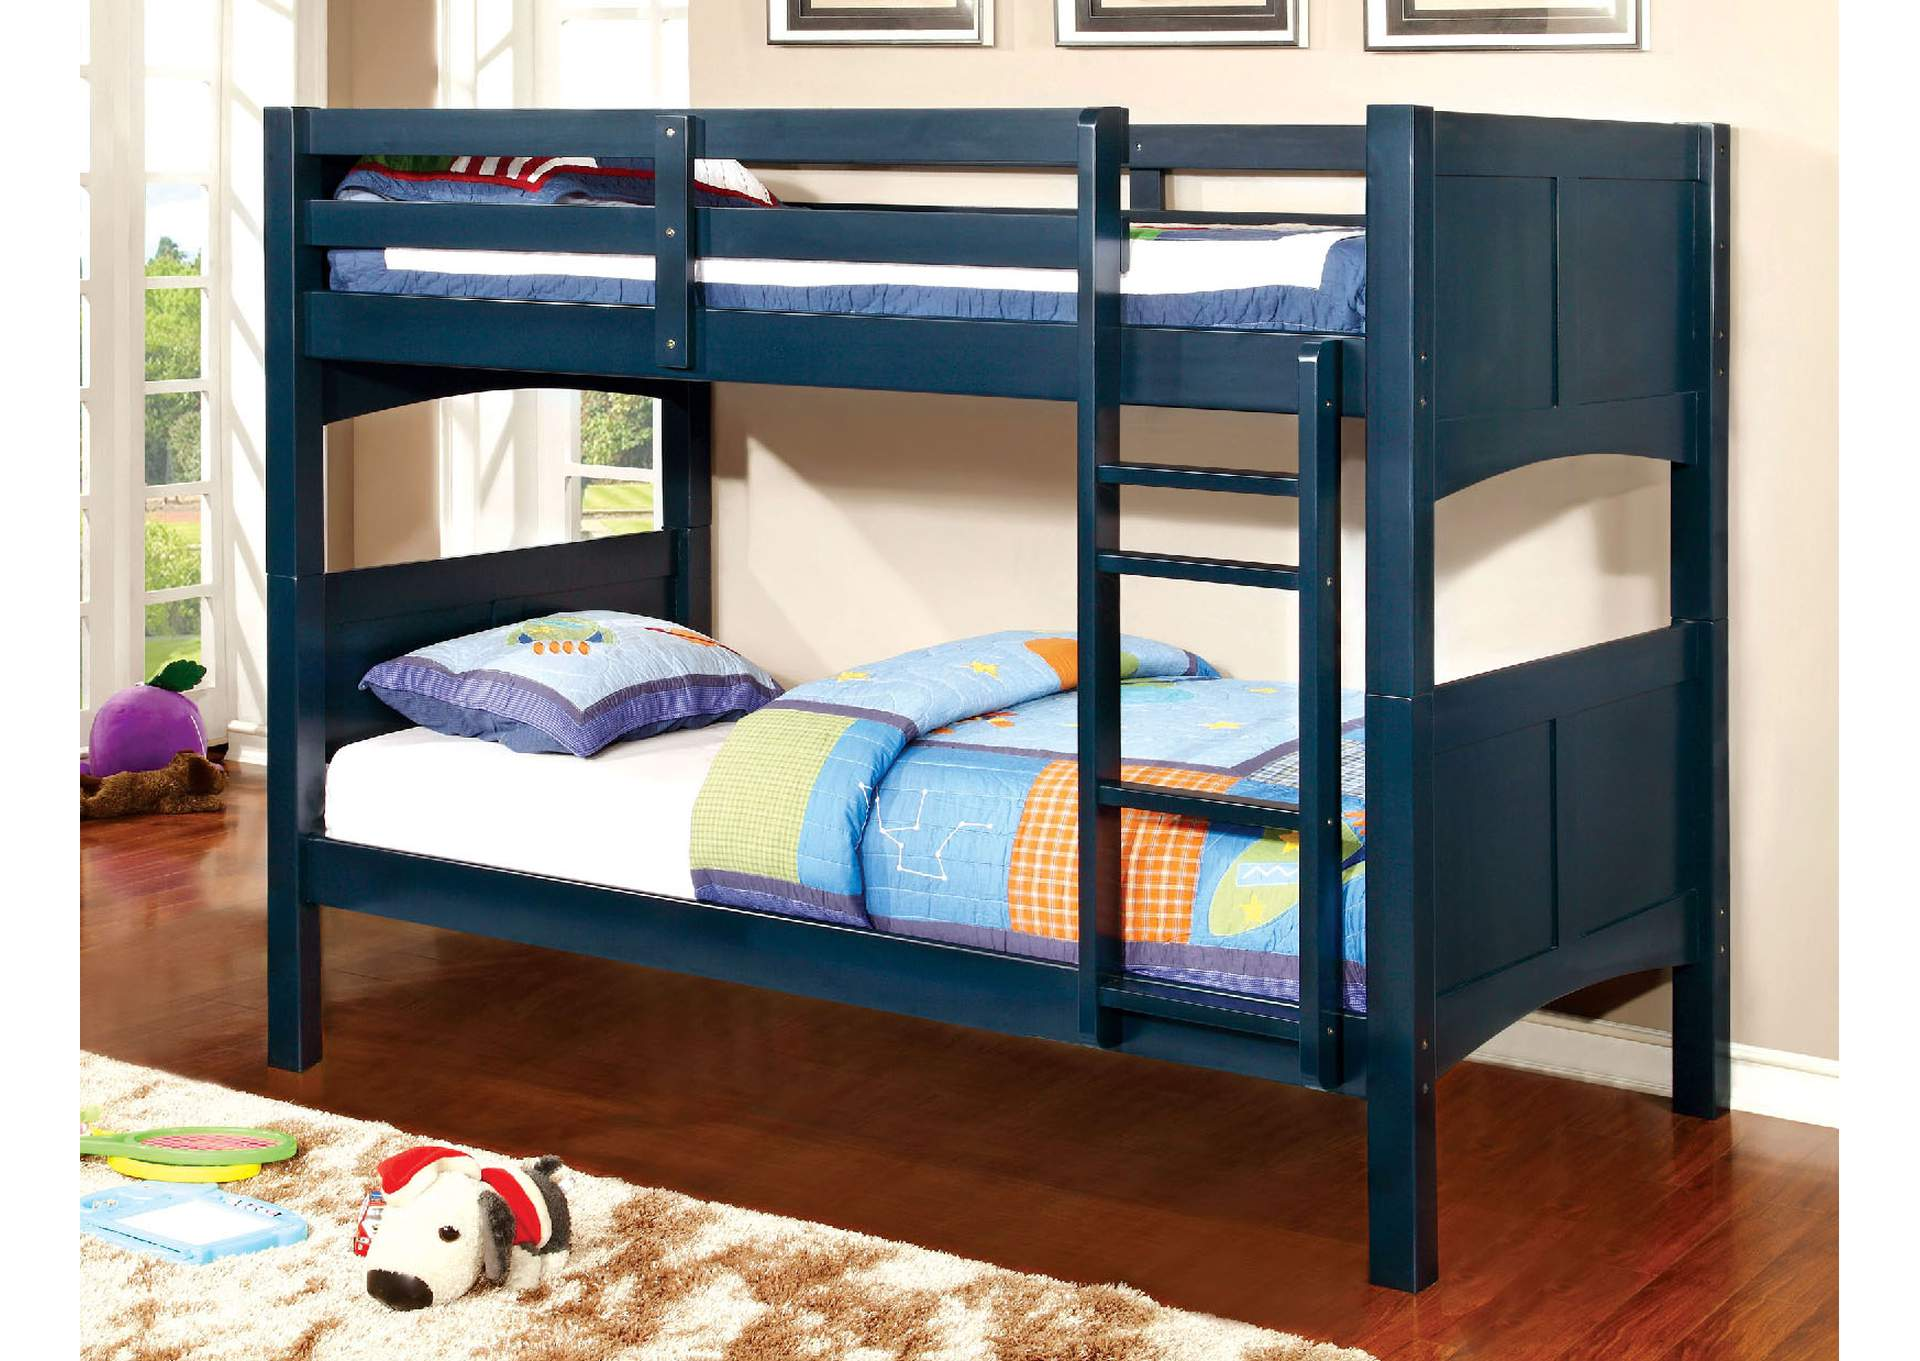 Prismo ll Blue Twin Bunk Bed,Furniture of America